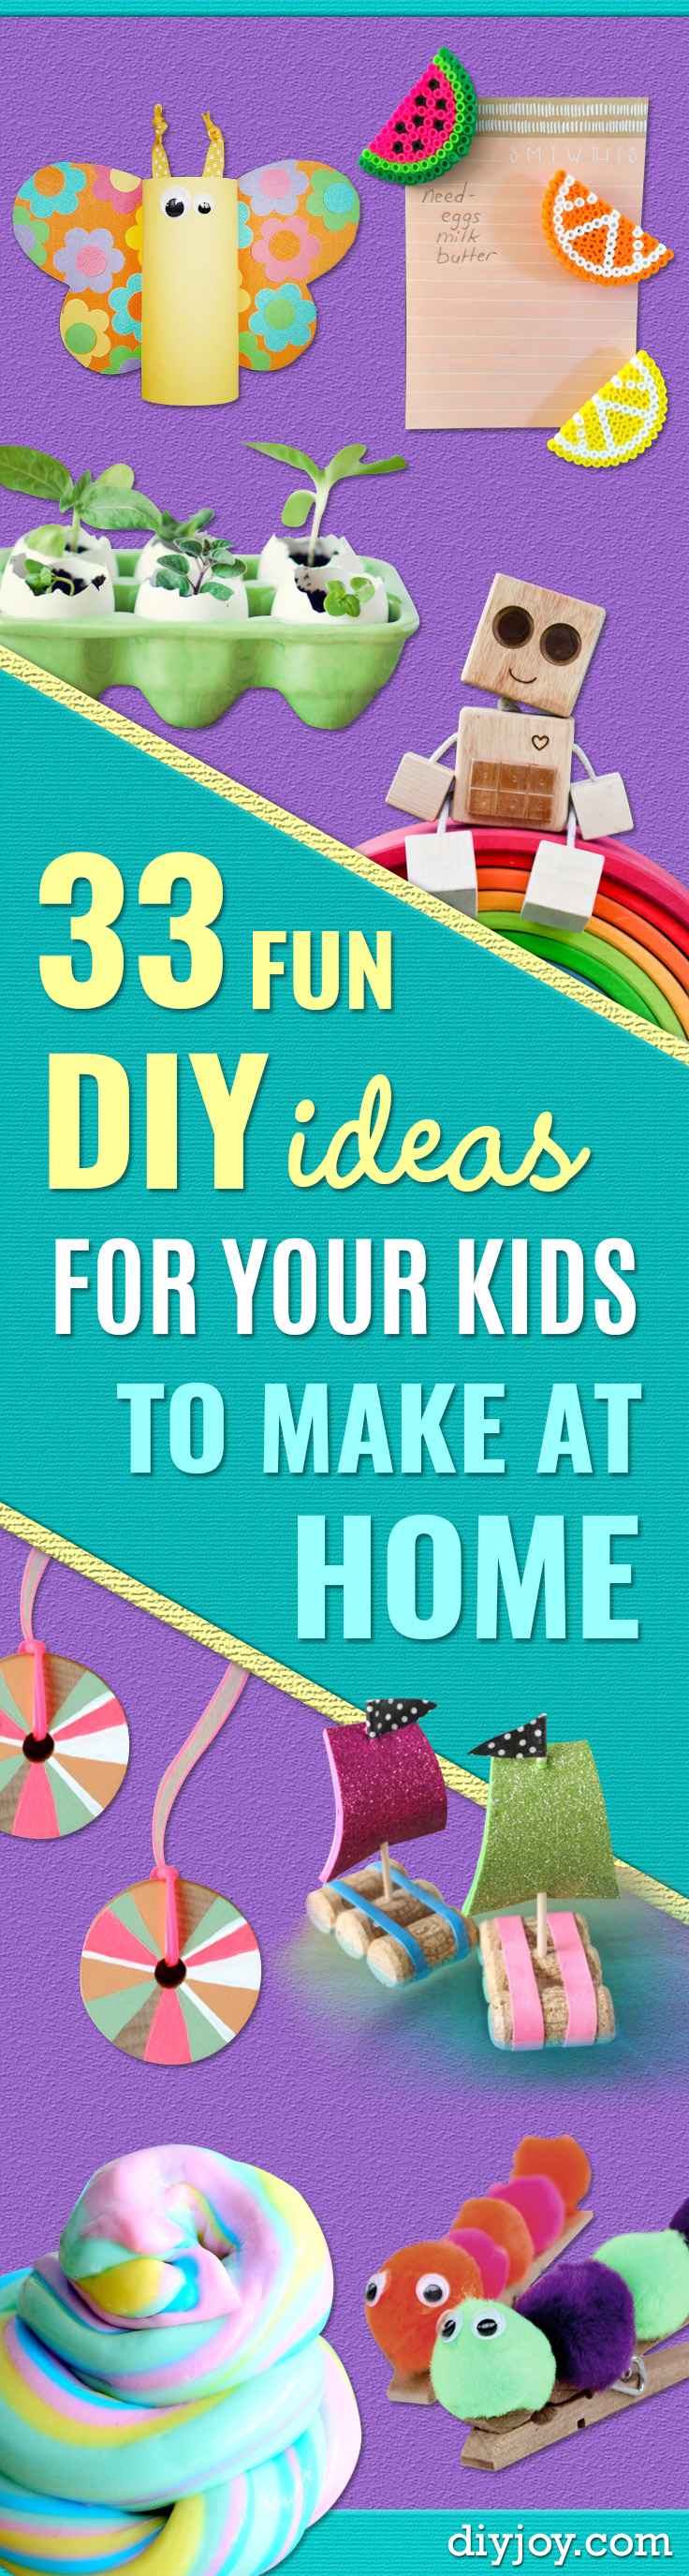 33 Fun DIY Ideas For Your Kids To Make At Home Page 4 Of